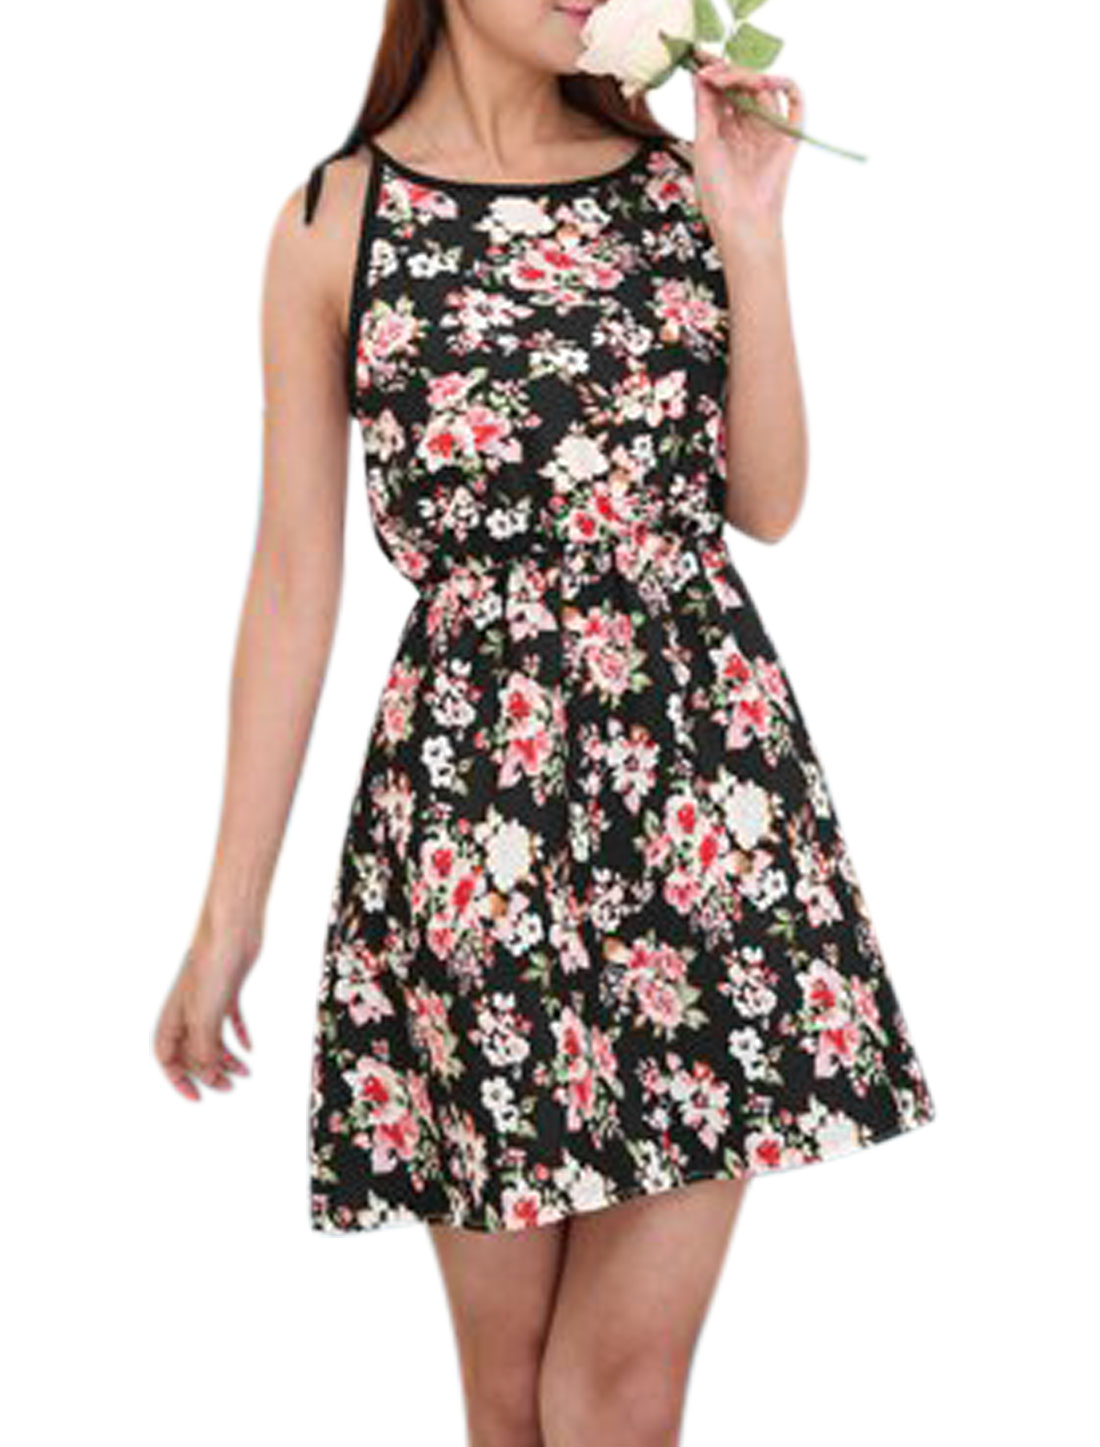 Women Round Neck Sleeveless Flower Prints Casual A-Line Dresses Black